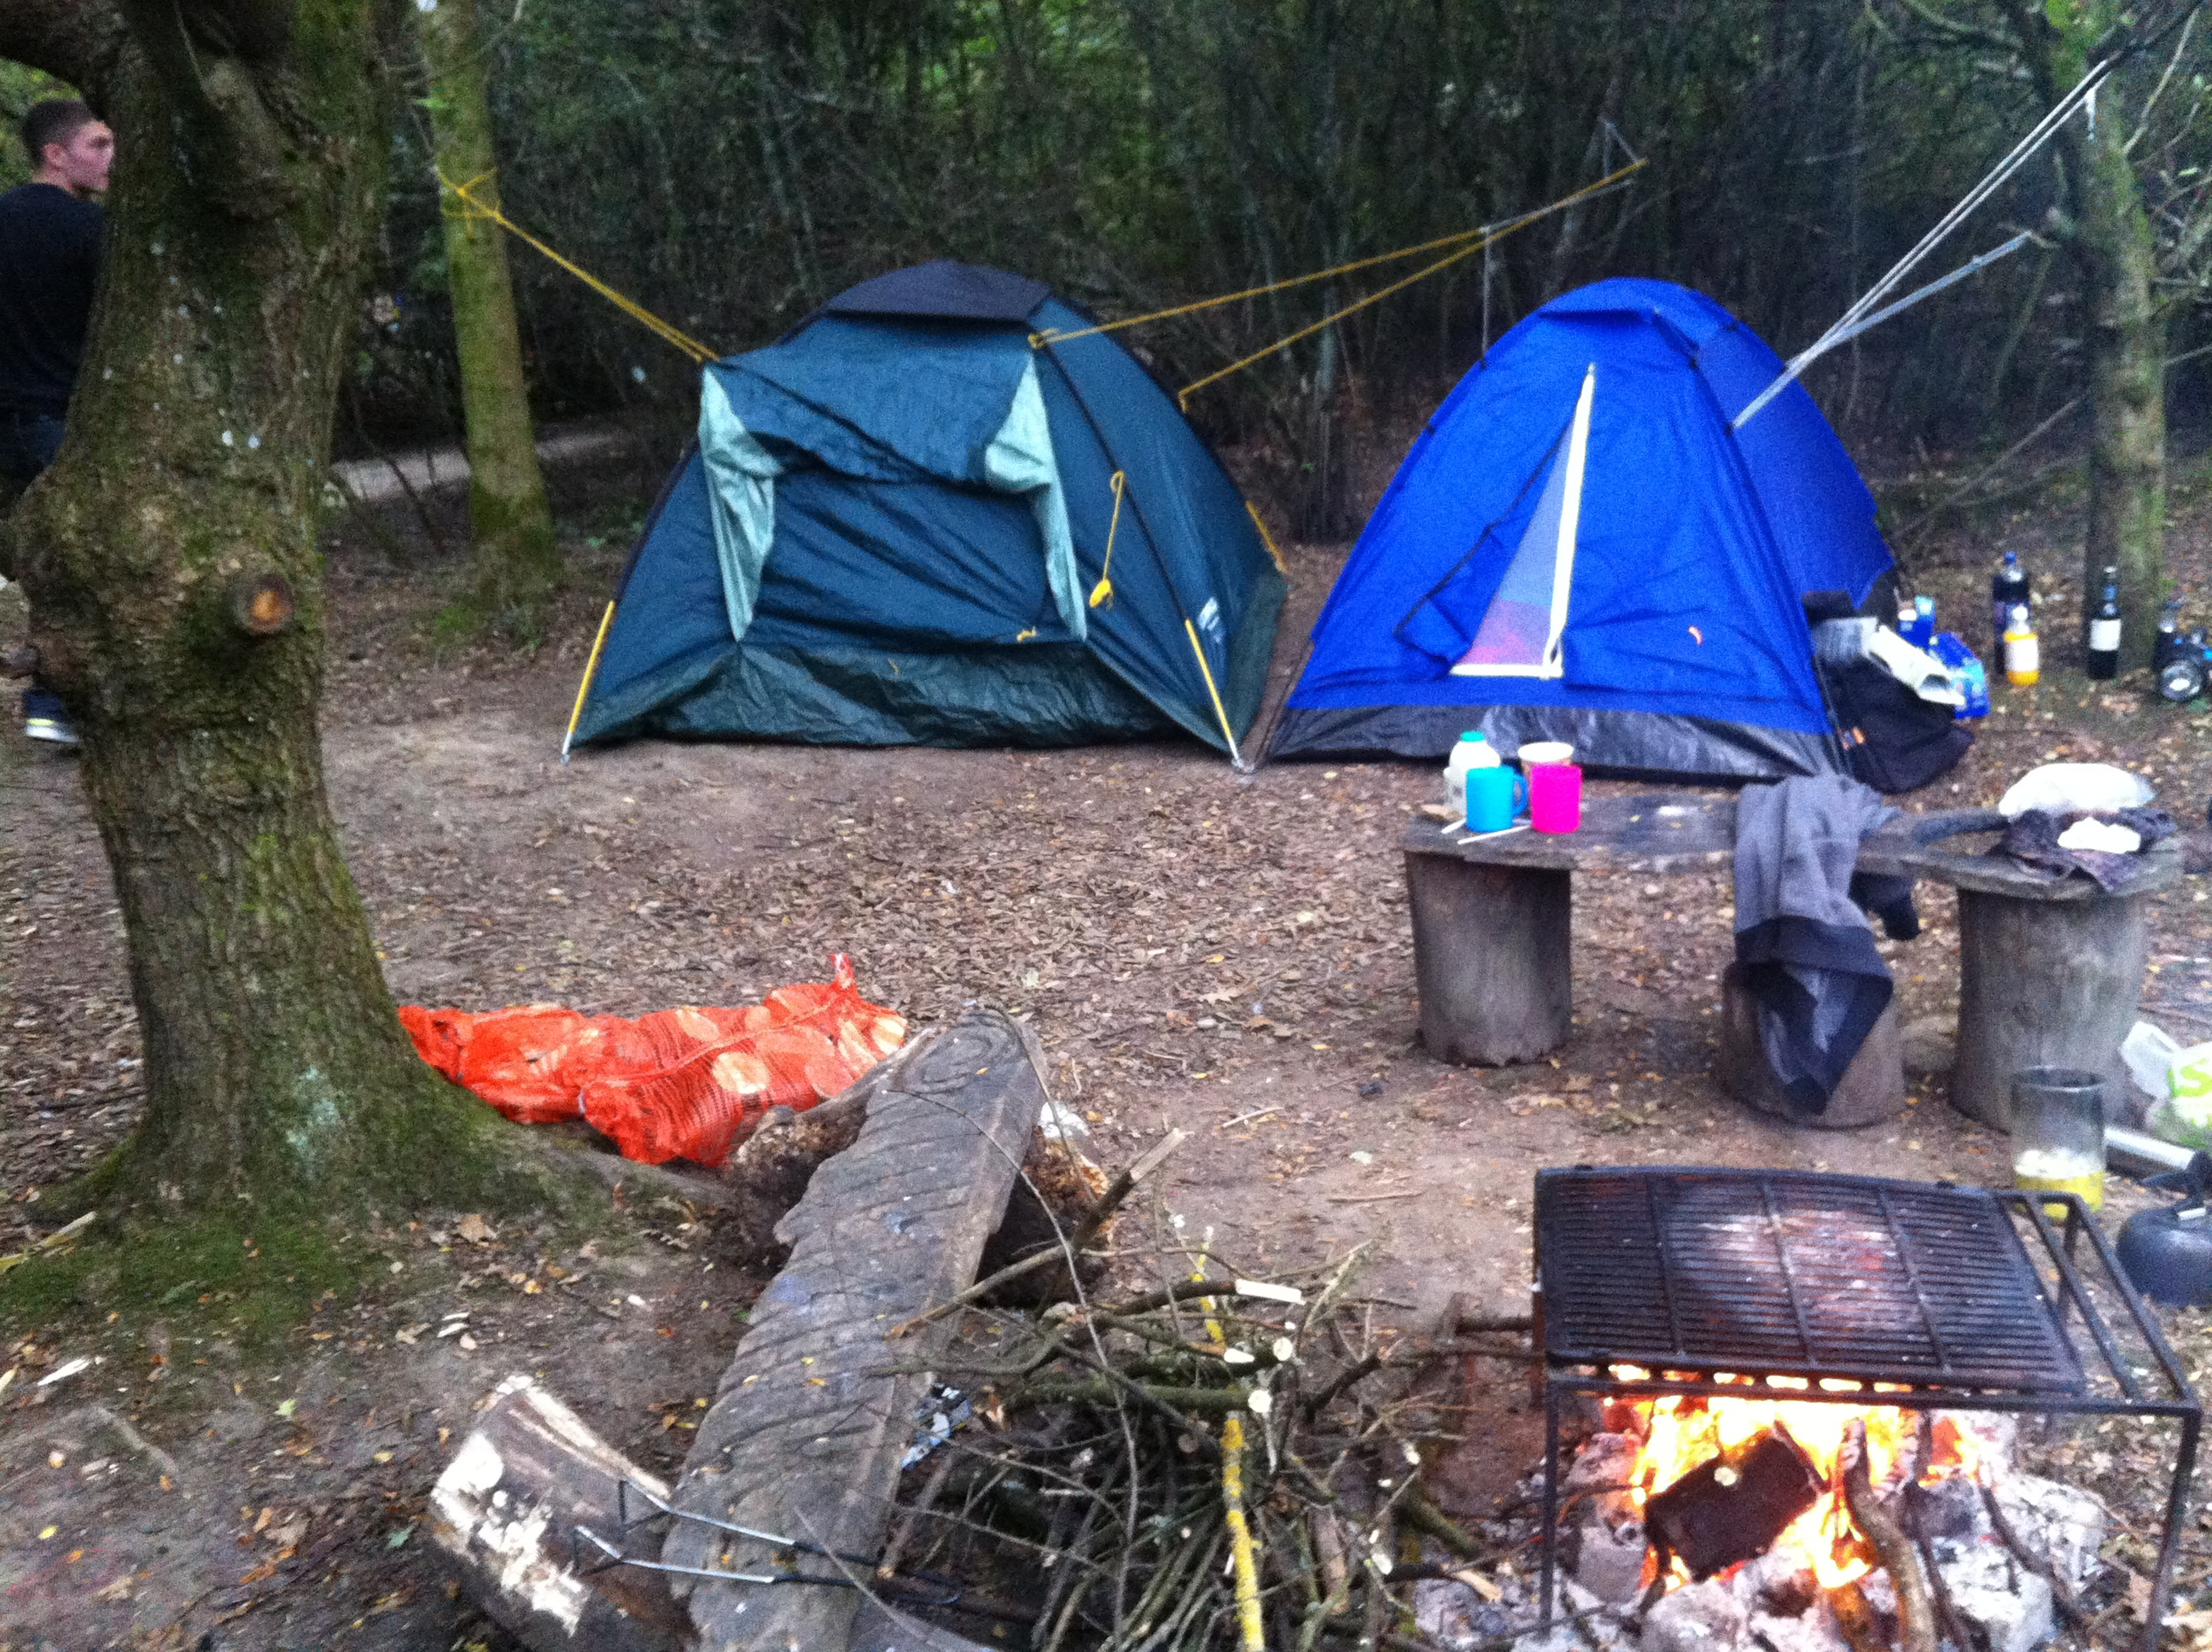 Blackberry Wood Campsite London